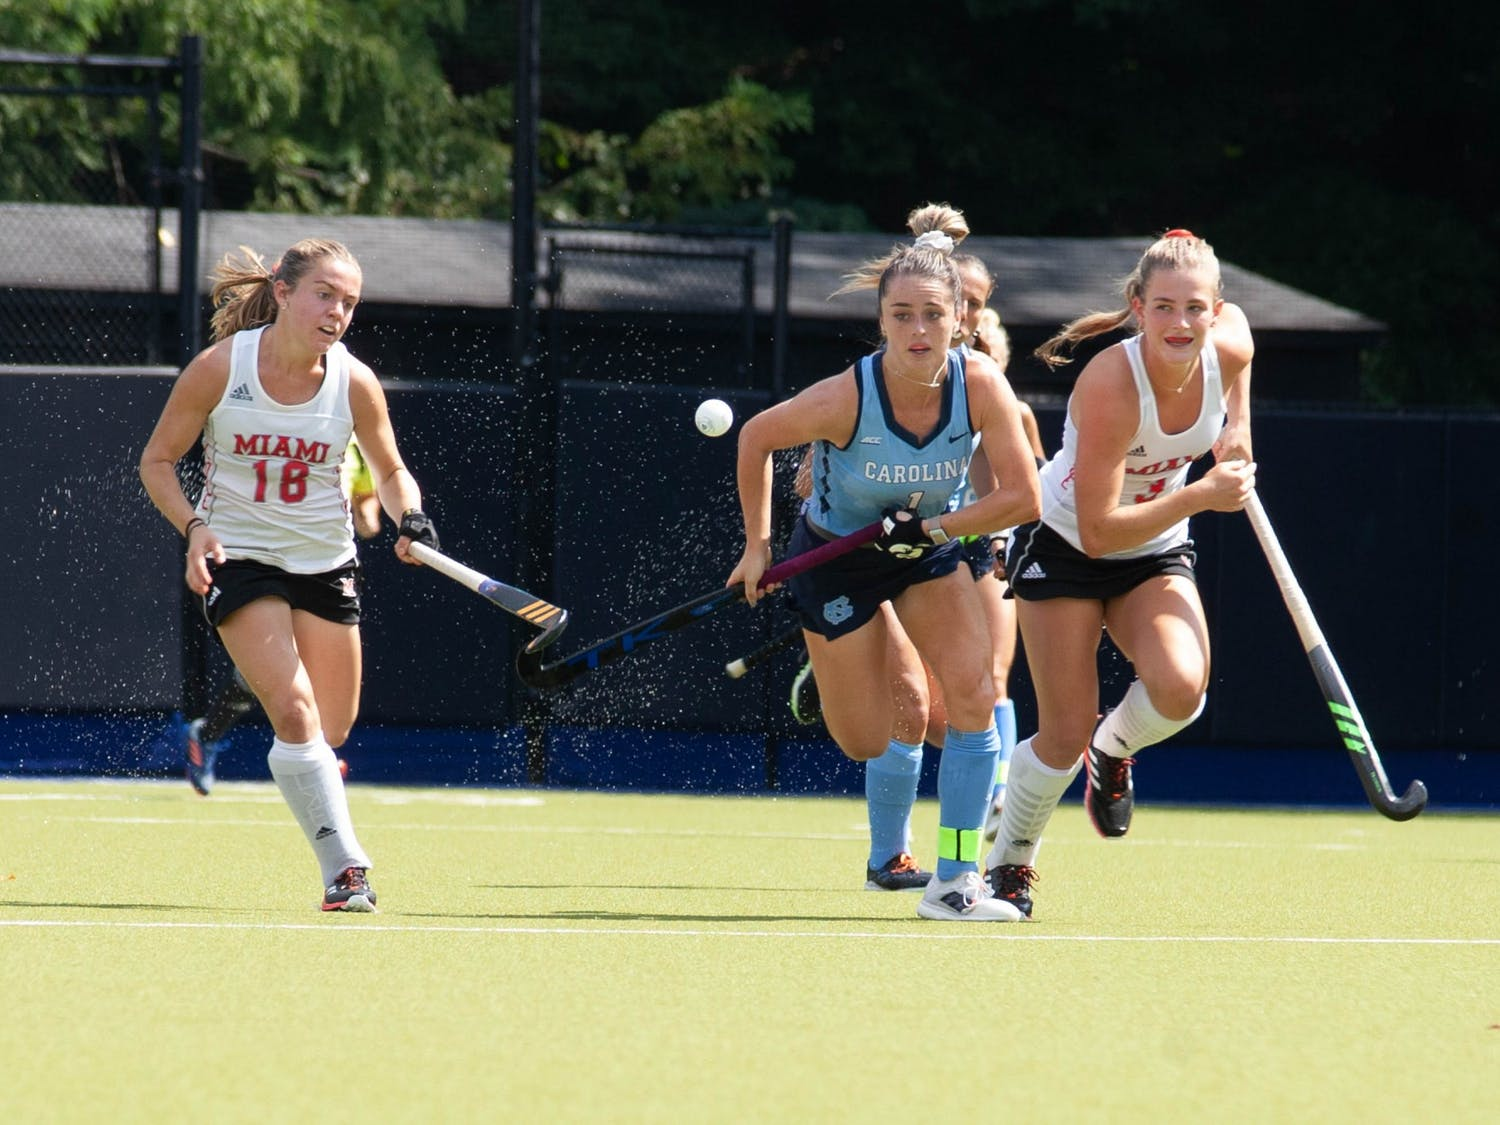 UNC senior forward Erin Matson (1) gains possession of the ball during the field hockey game against the Miami RedHawks at Karen Shelton Stadium on September 19, 2021. The Tar Heels defeated the RedHawks 7-2.